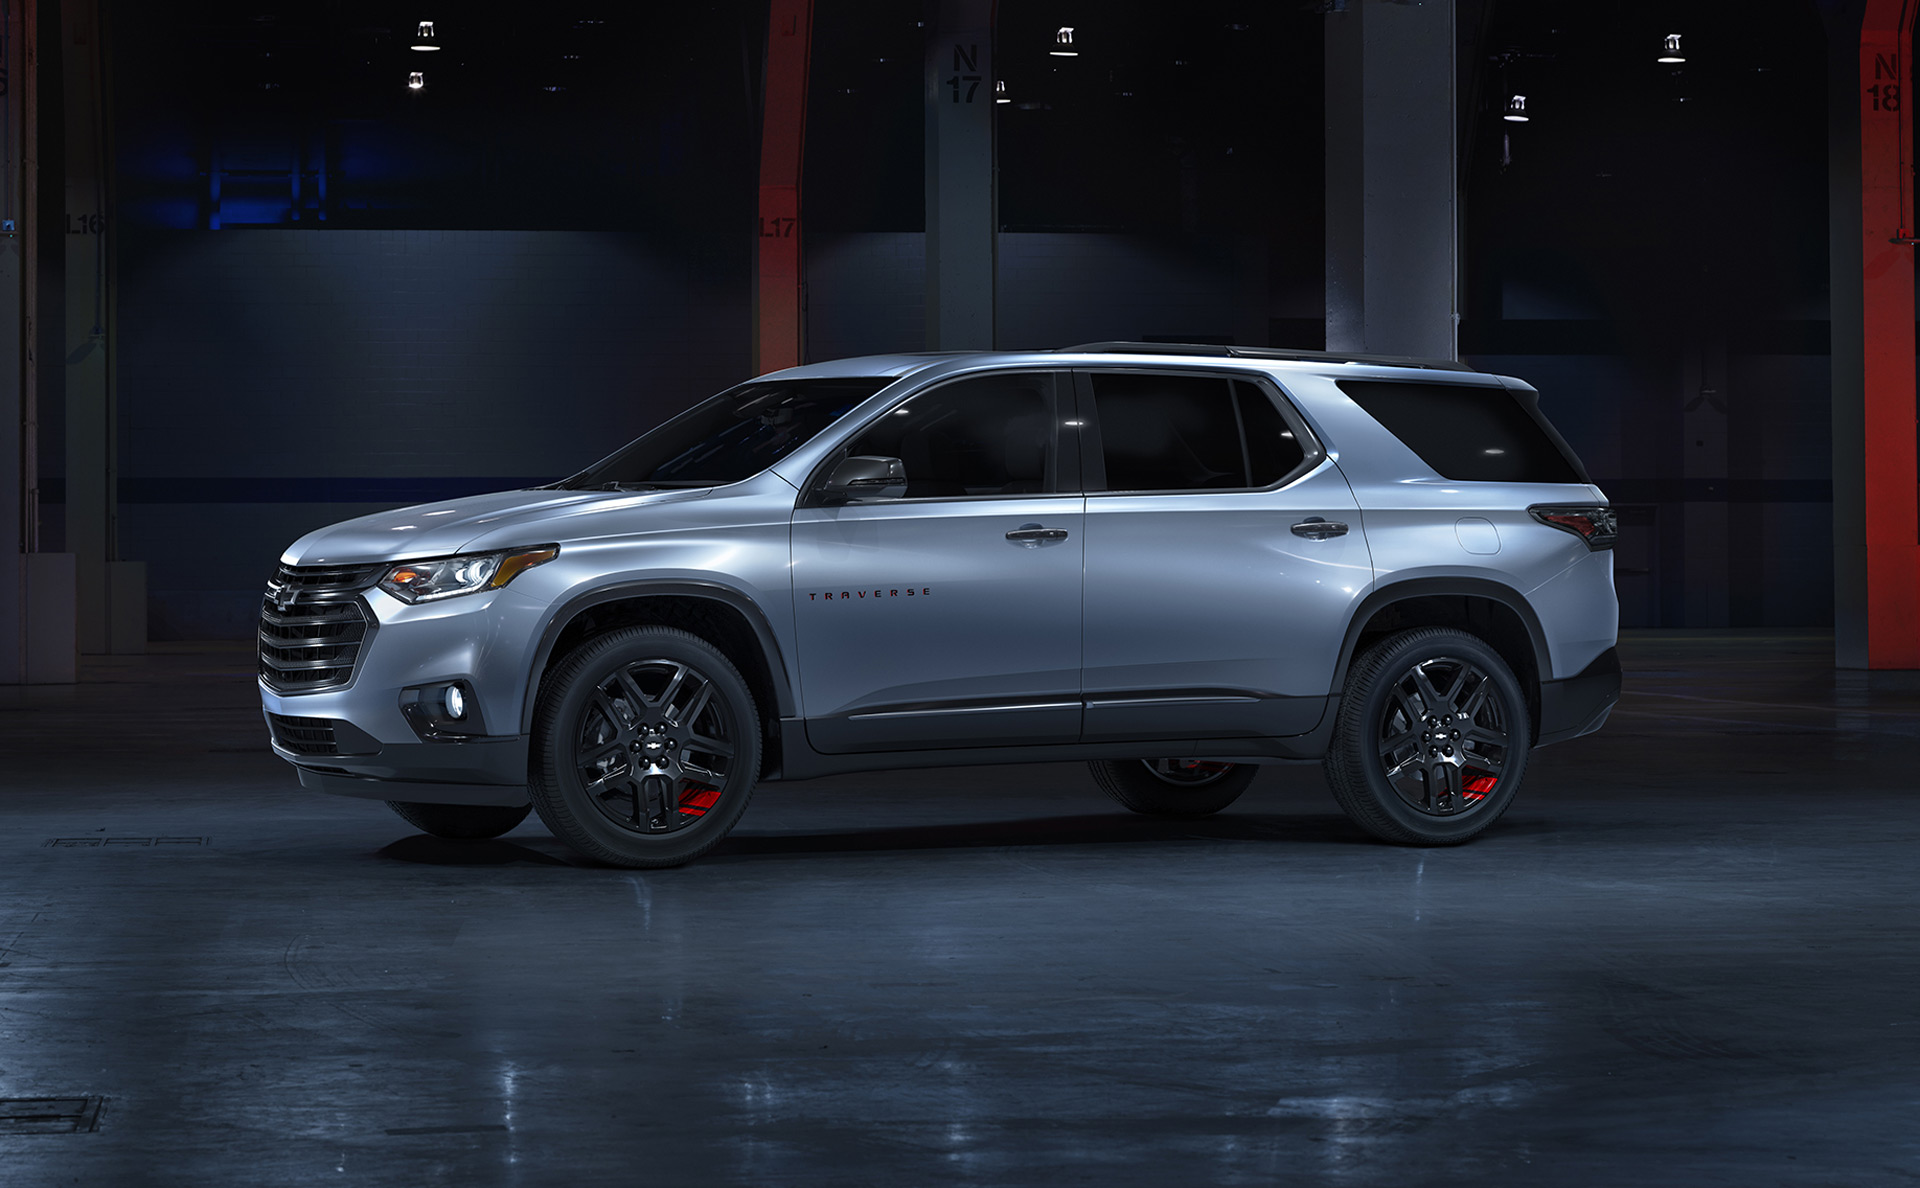 Compromise king: 2018 Chevrolet Traverse RS priced from ...